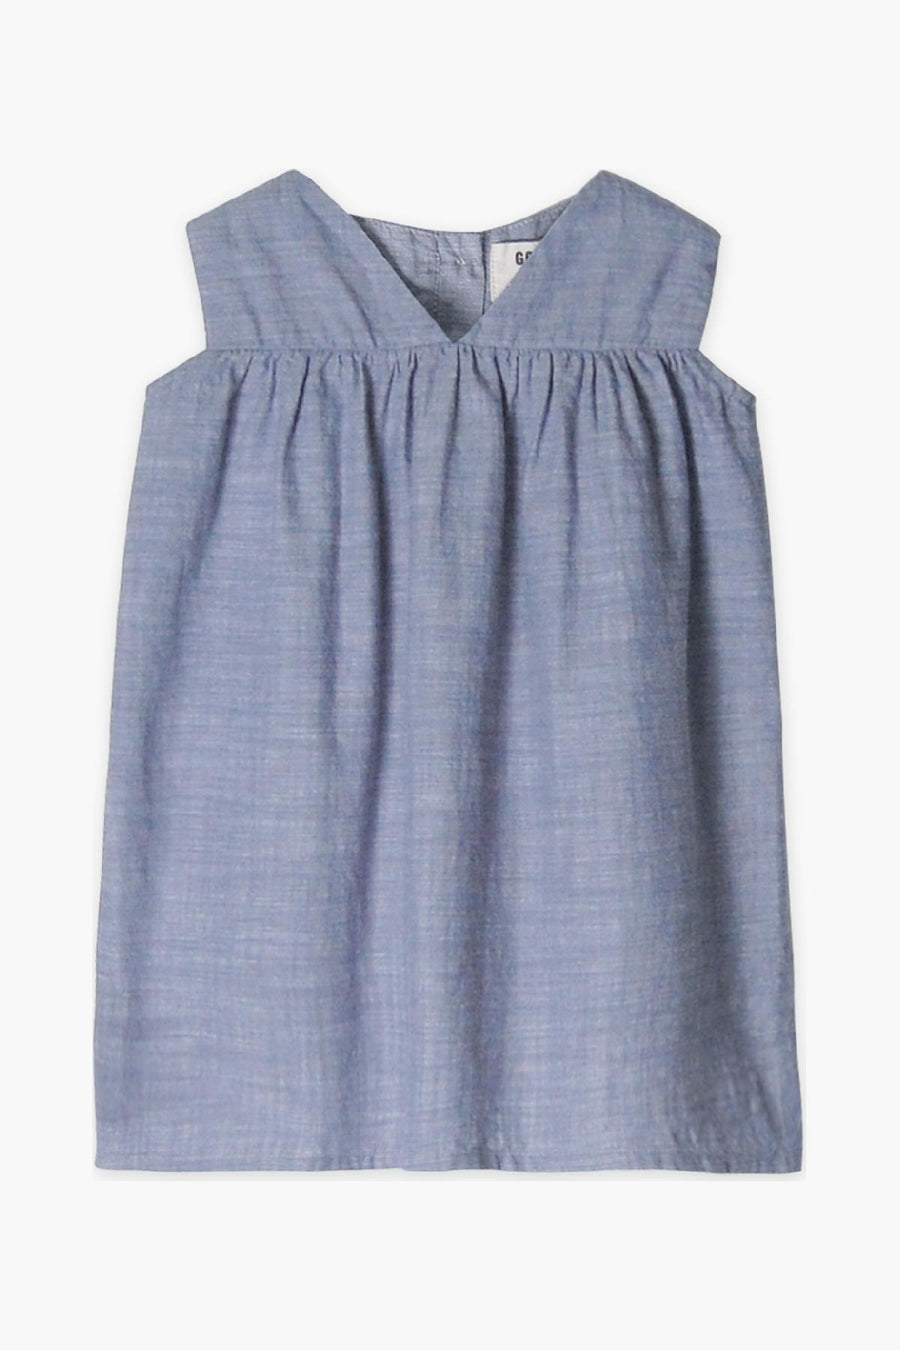 Go Gently Nation Chambray Savannah Dress